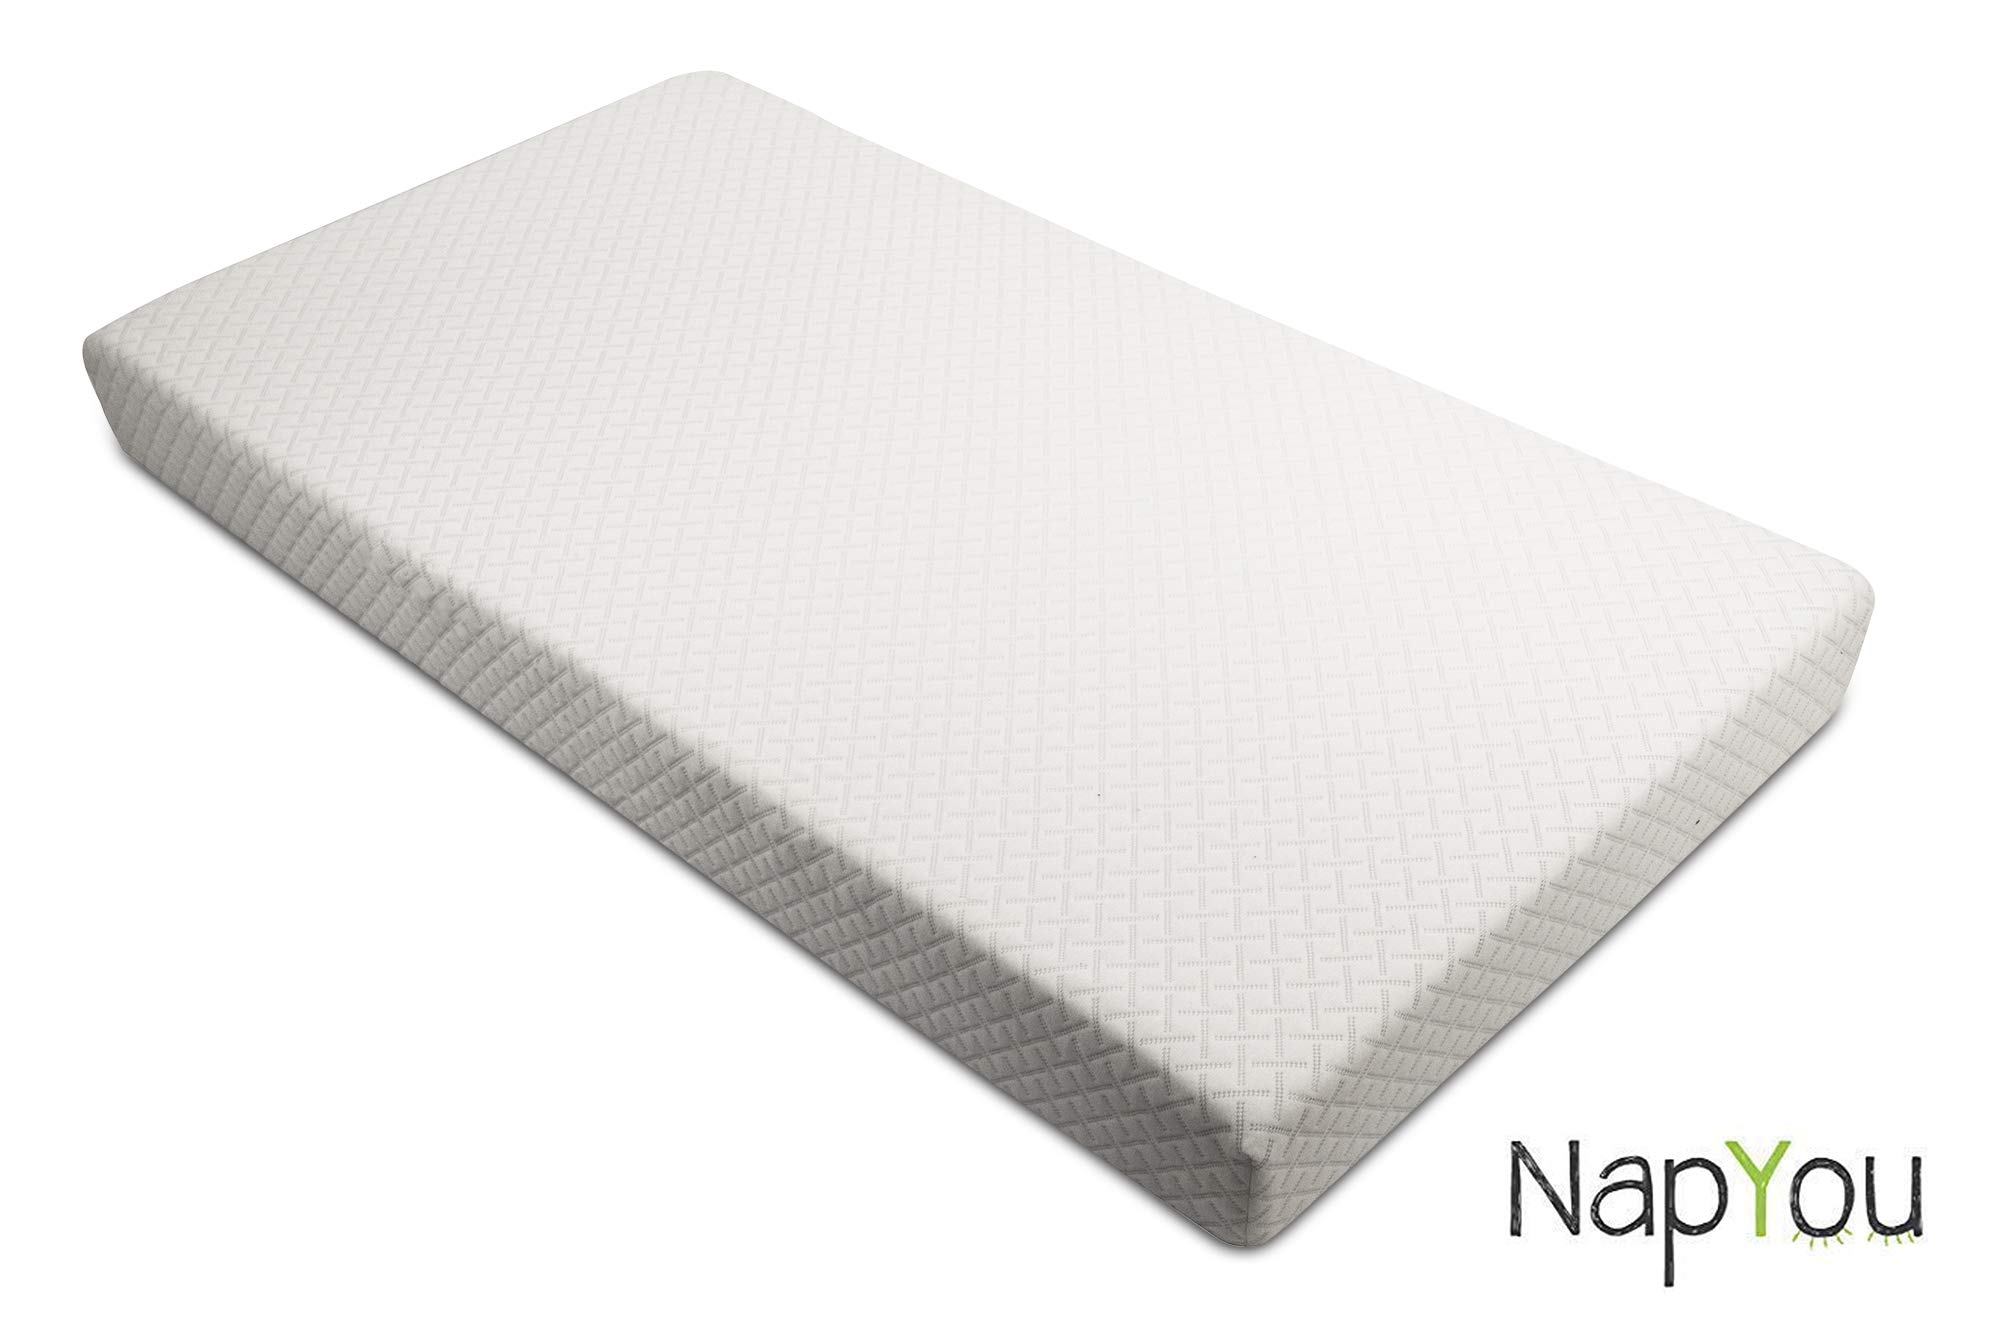 Official Amazon Exclusive NapYou Crib Mattress for Baby or Toddler Bed Mattress with Organic Cotton and Waterproof Cover